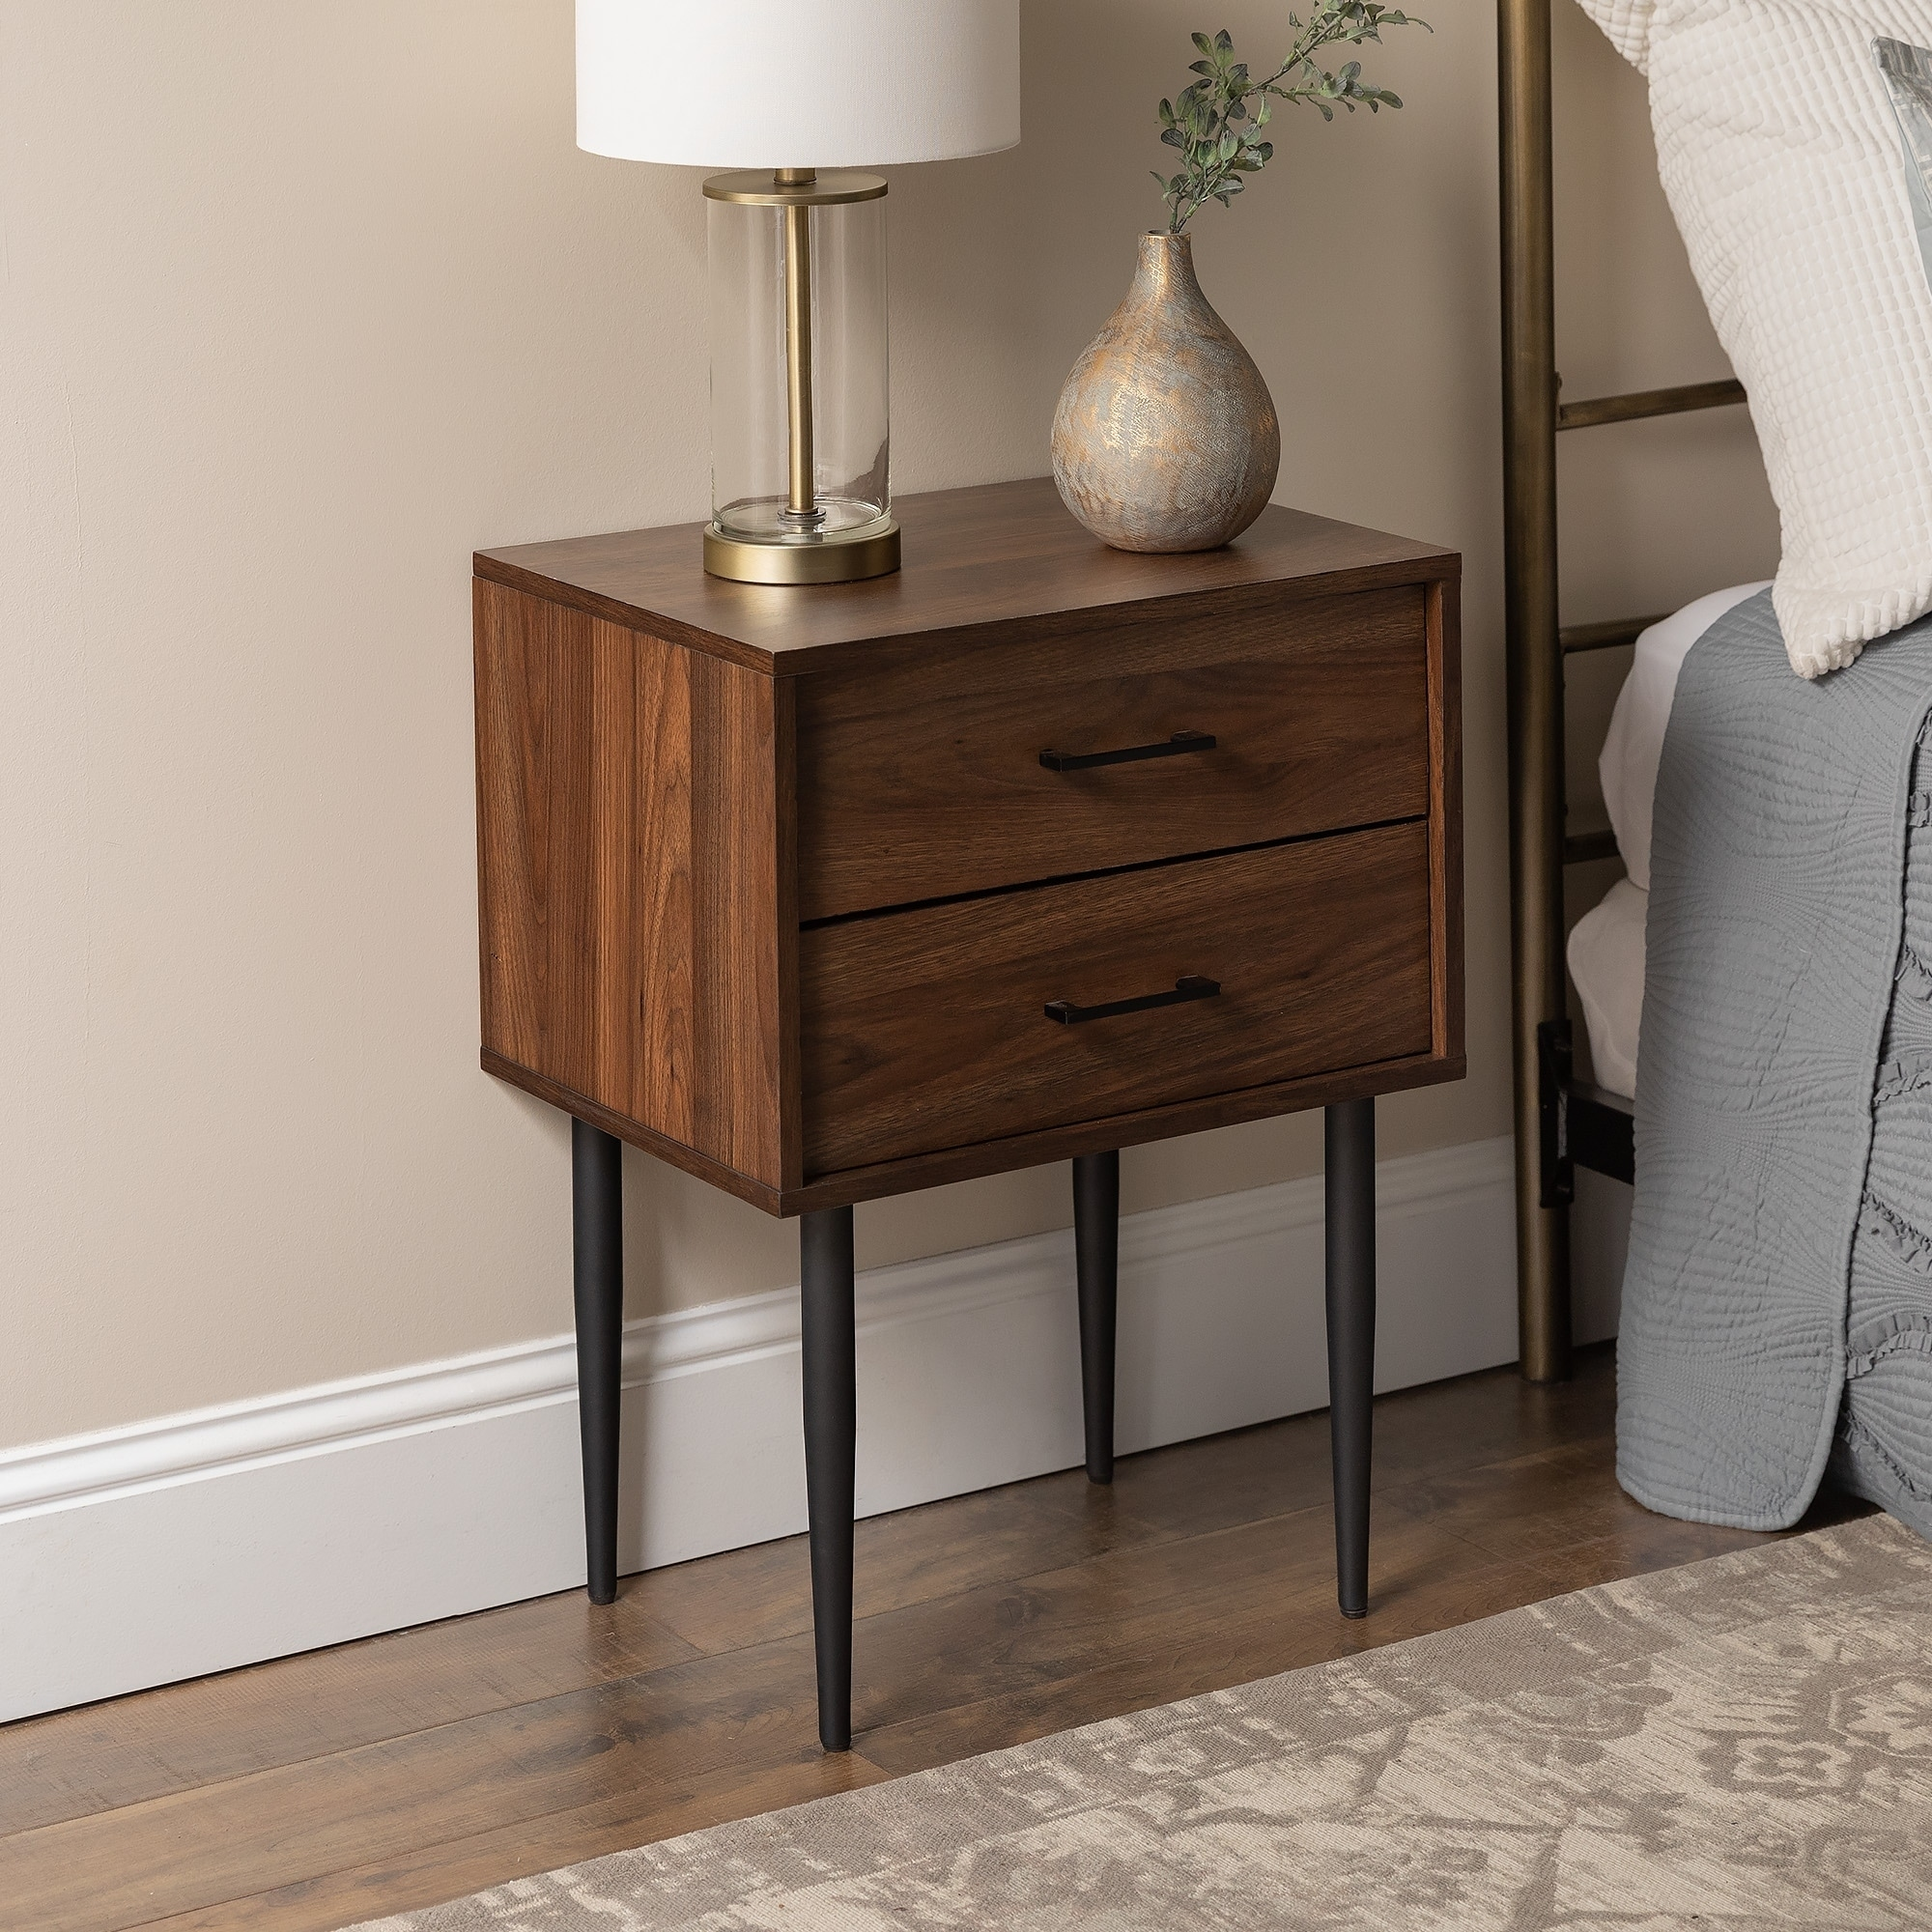 Carson Carrington Notto 20 Inch Modern 2 Drawer Nightstand